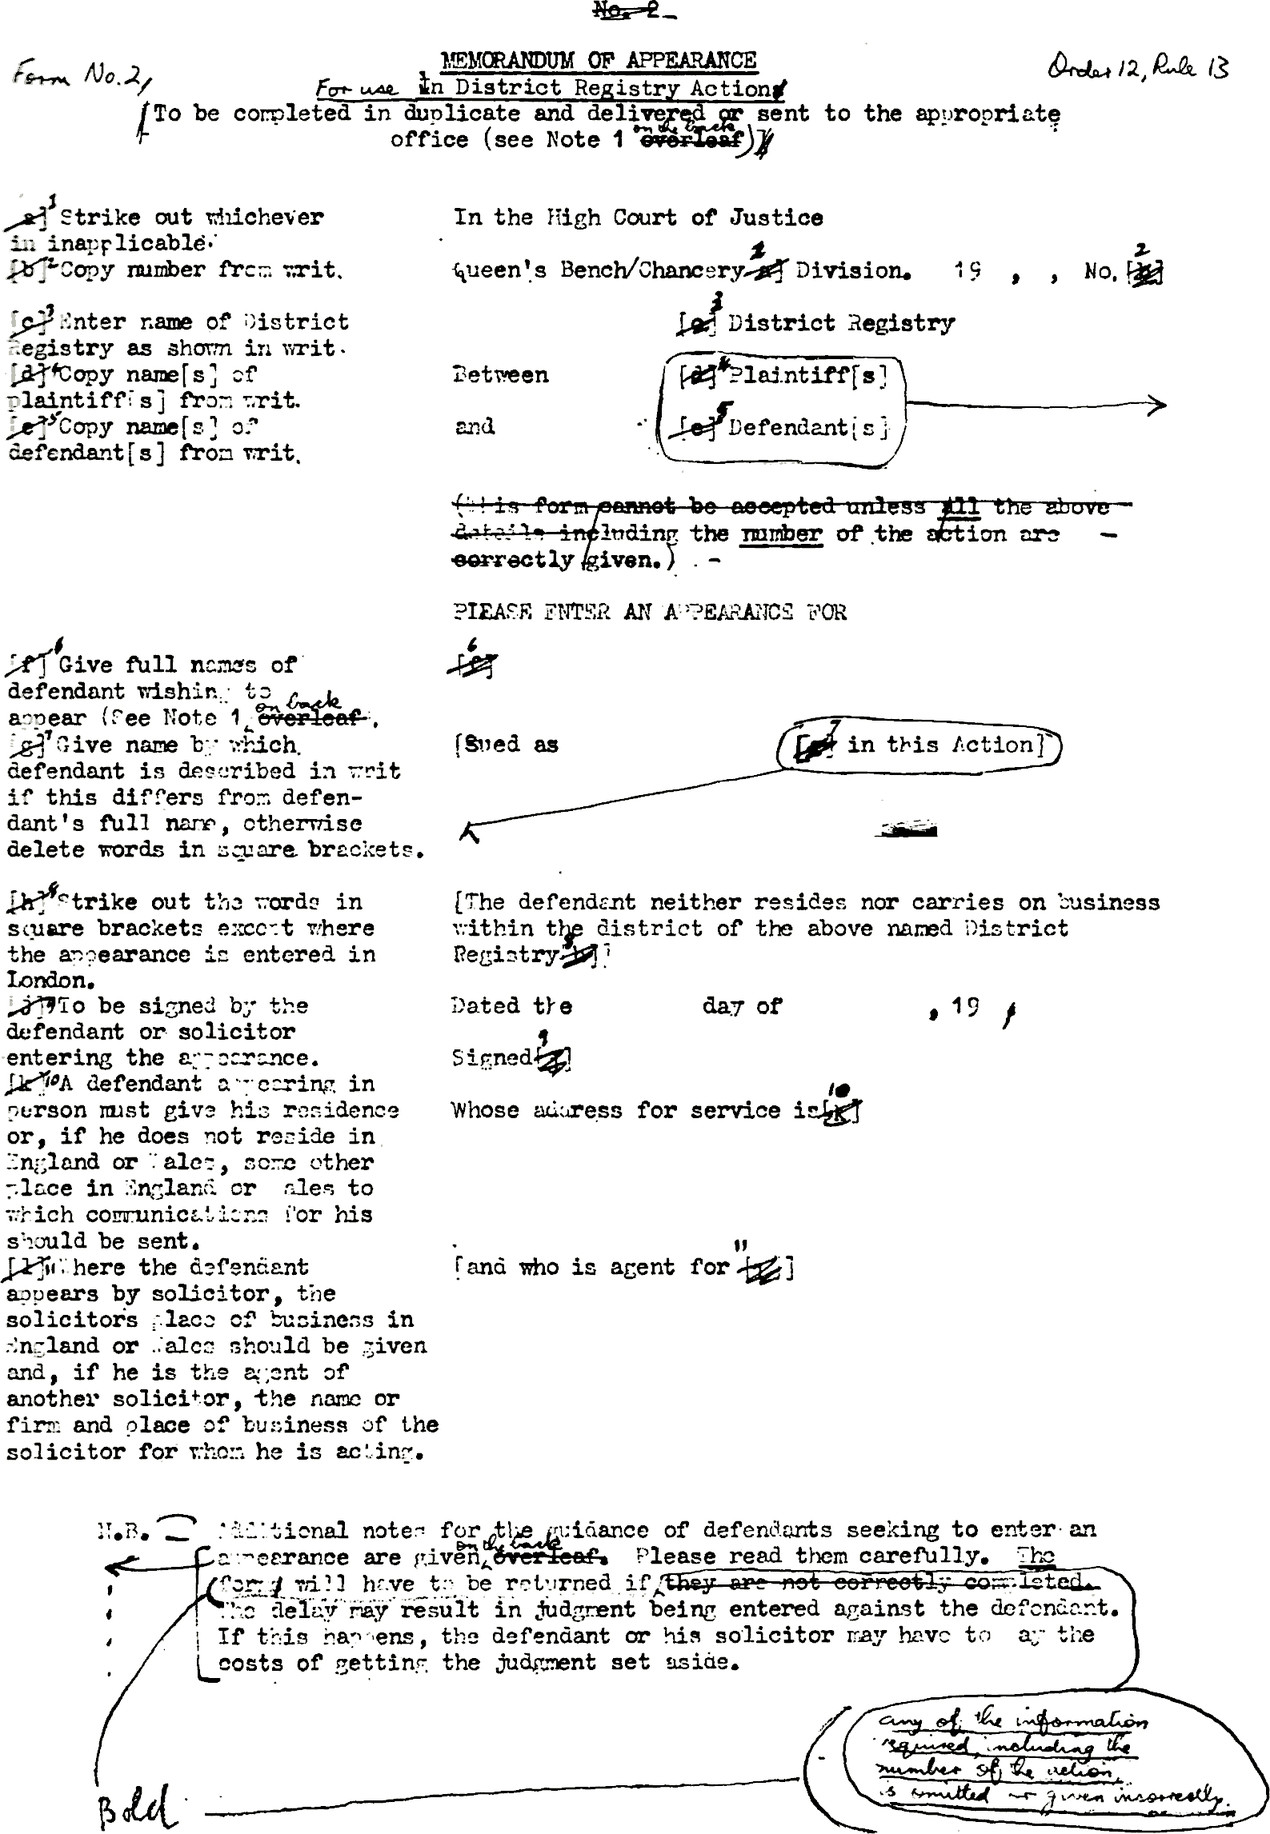 Typewritten draft with proof correction symbols to indicate formatting, many adjustments are made such as using numbers instead of alphabet for keys and moving fields for more space.